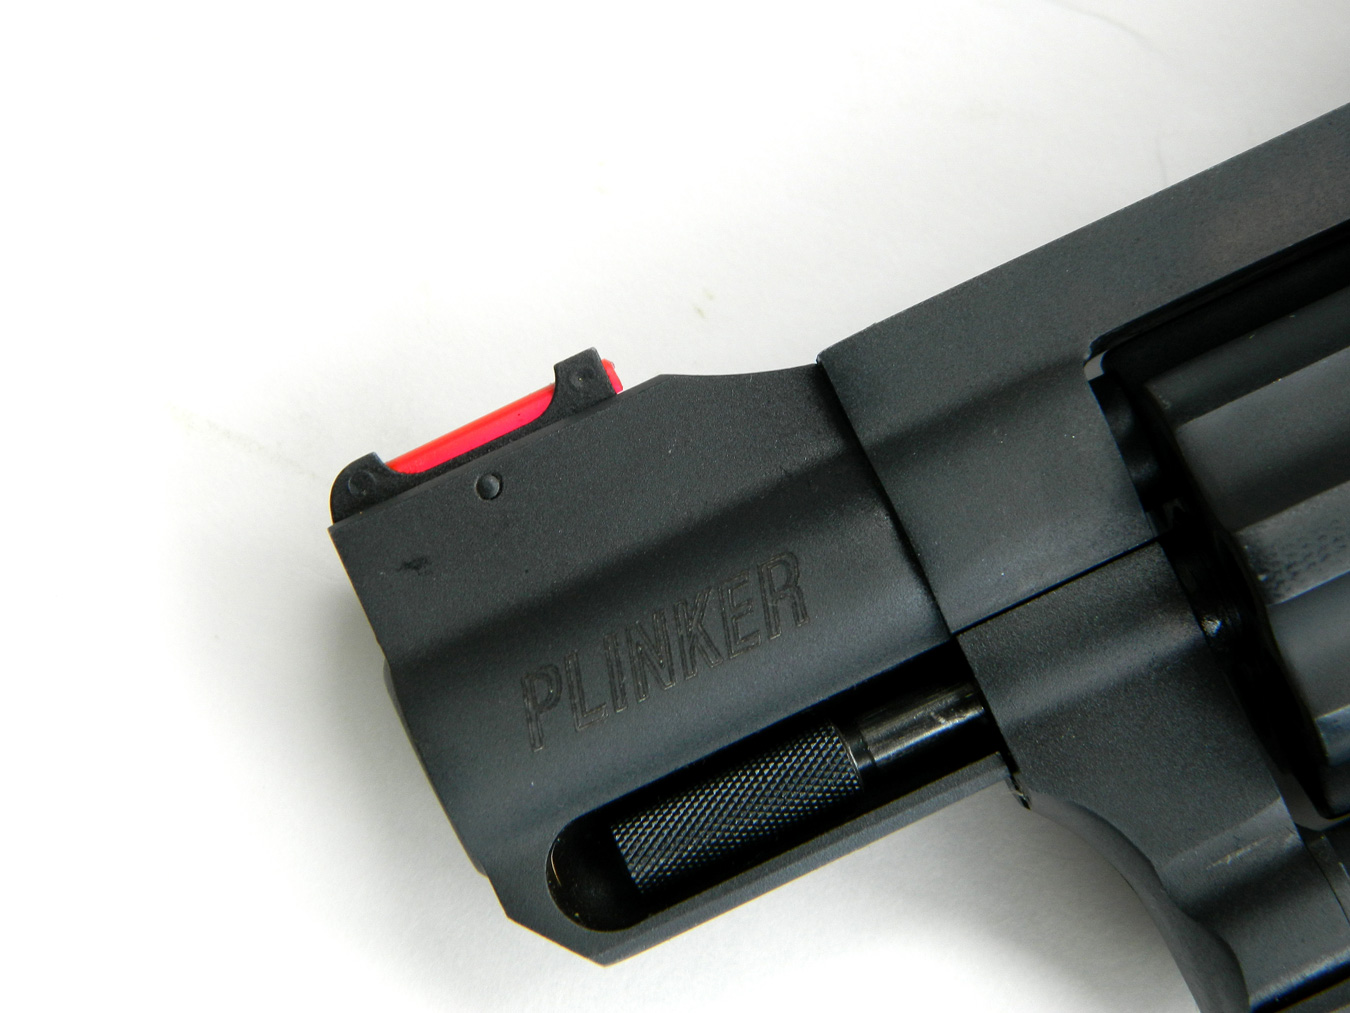 Fiber optic front sight on a short barrel revolver